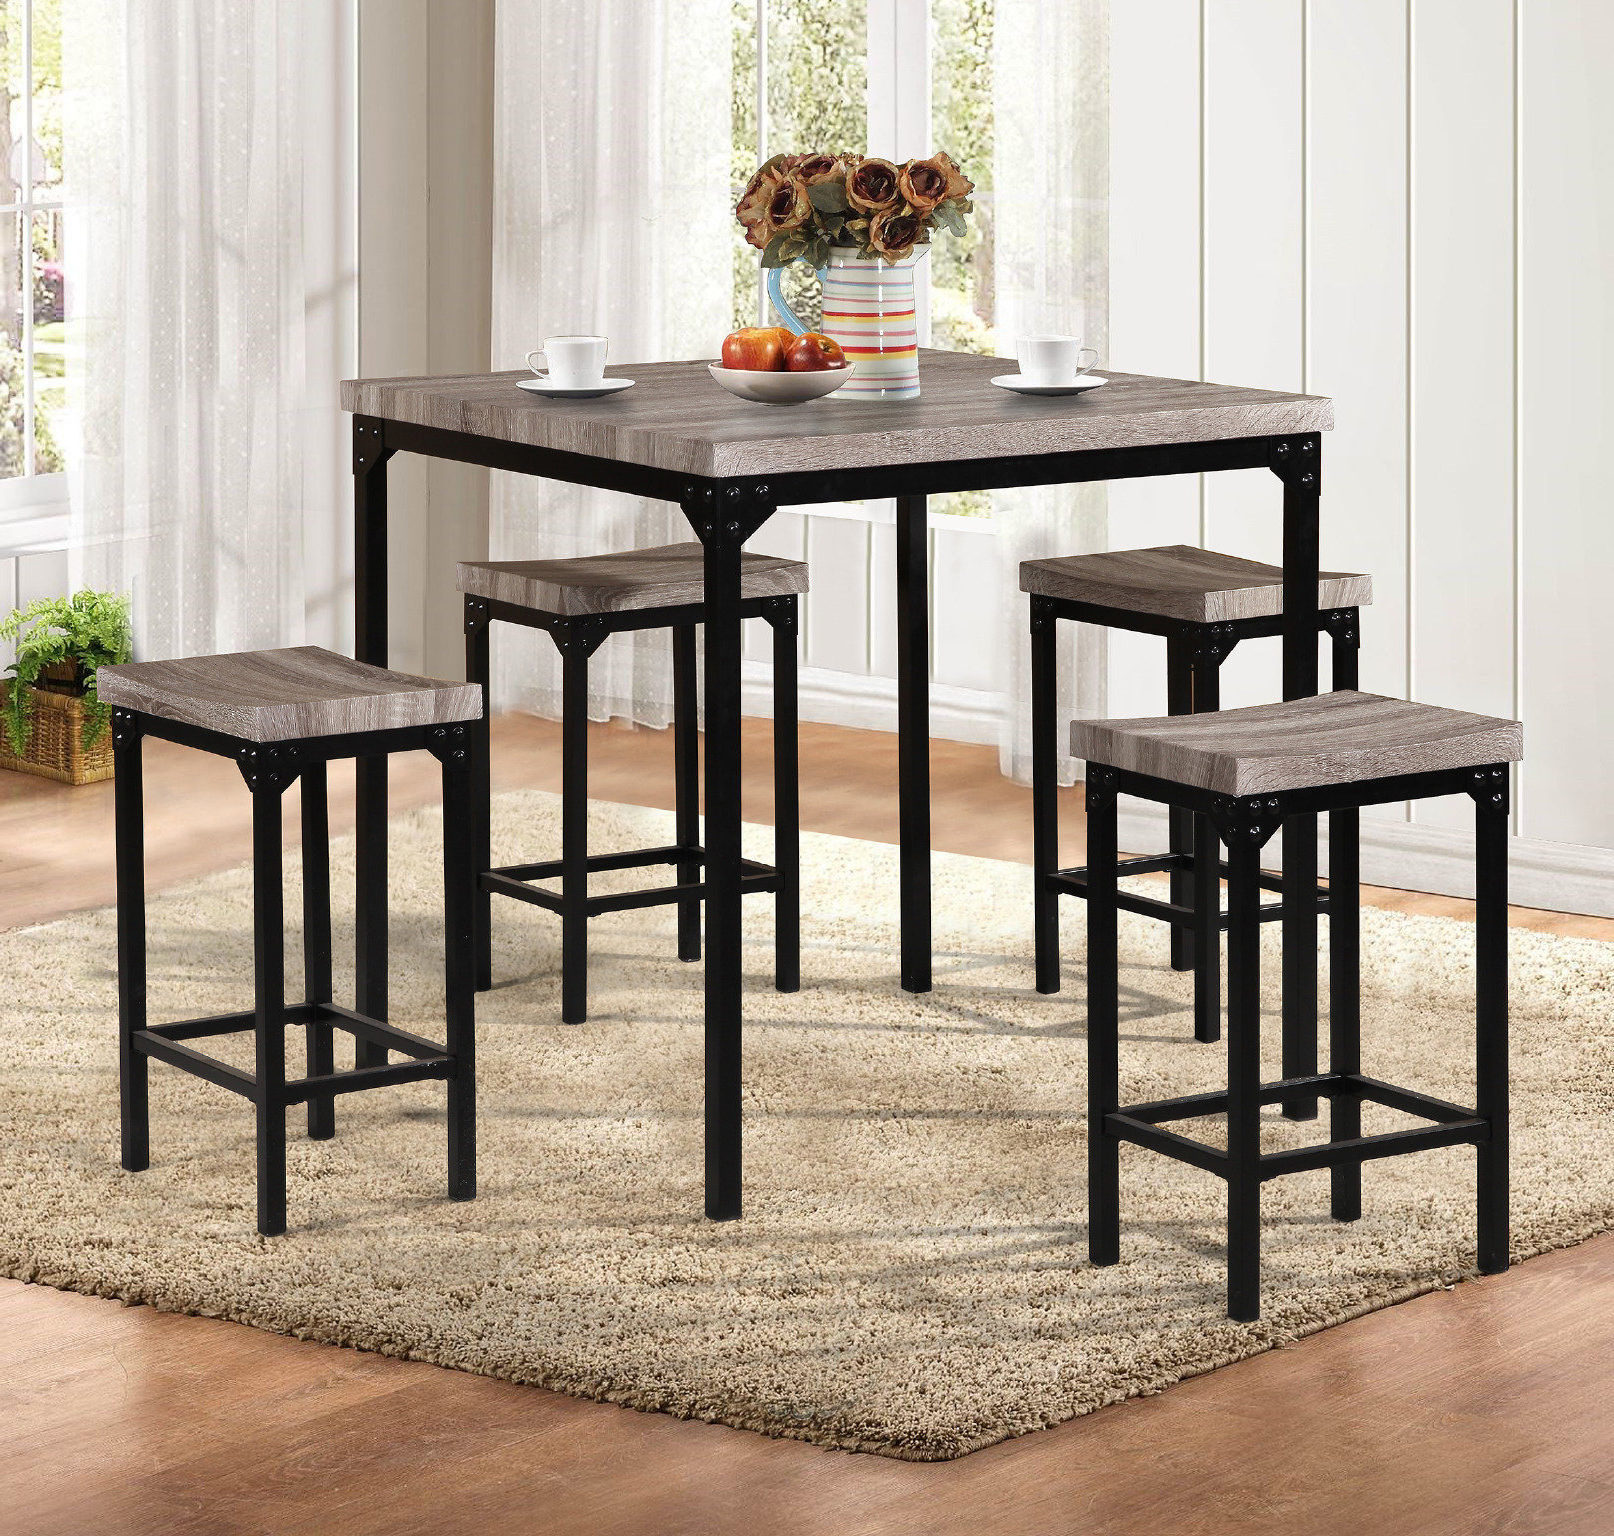 Denzel 5 Piece Counter Height Breakfast Nook Dining Sets within Best and Newest Latitude Run Breen 5 Piece Pub Table Set